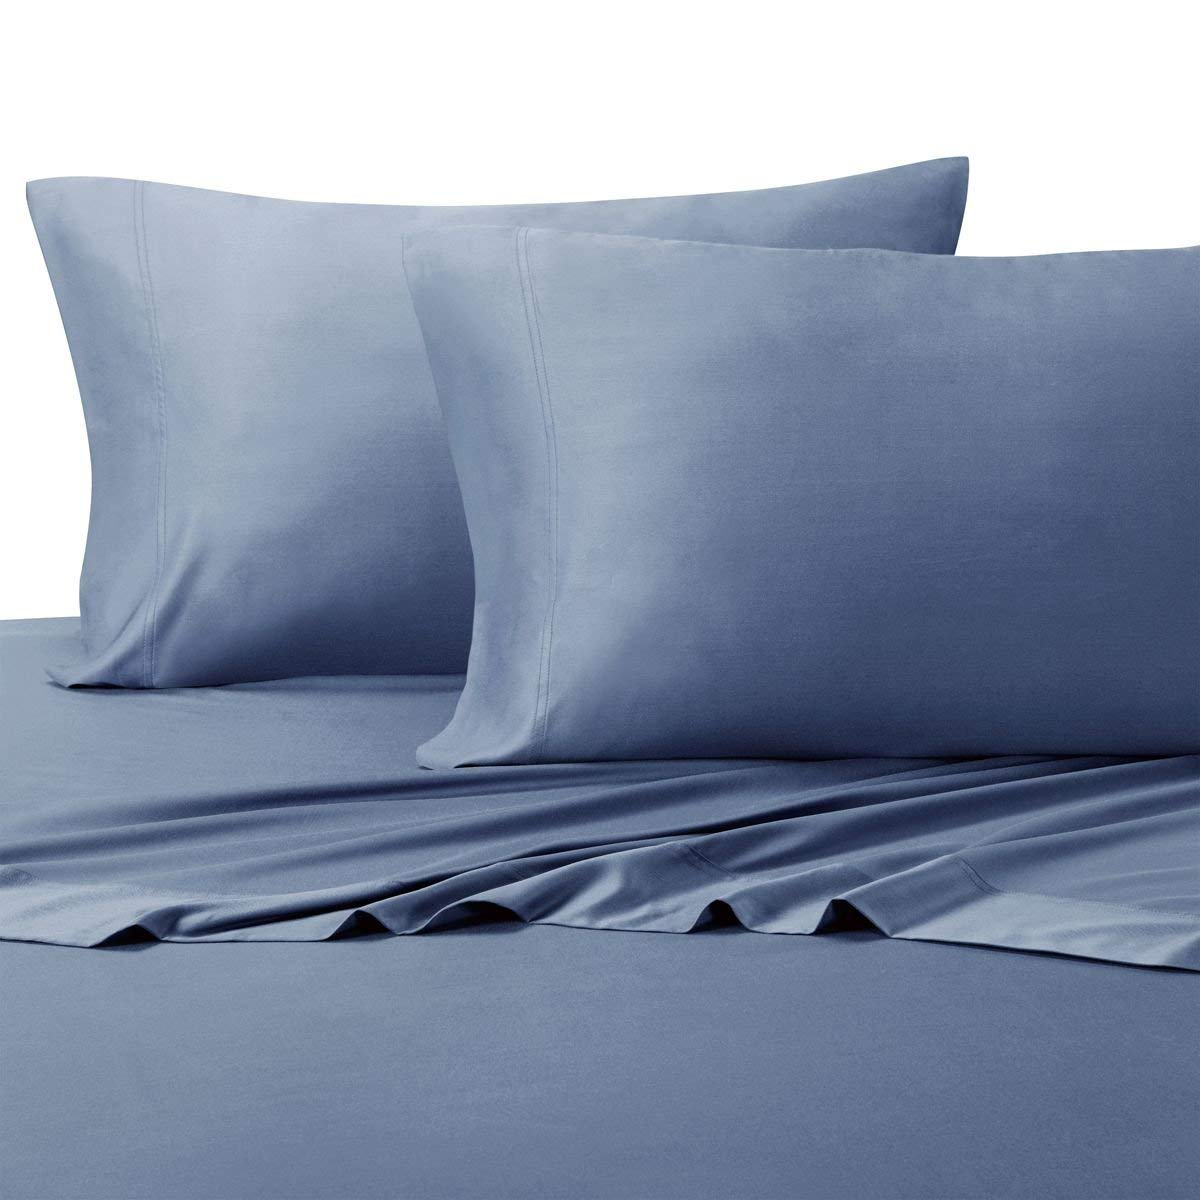 Royal Hotel Silky Soft Bamboo Cotton Sheet Set, 100% Bamboo-Cotton Bed Sheets, Top Split King Size, Periwinkle